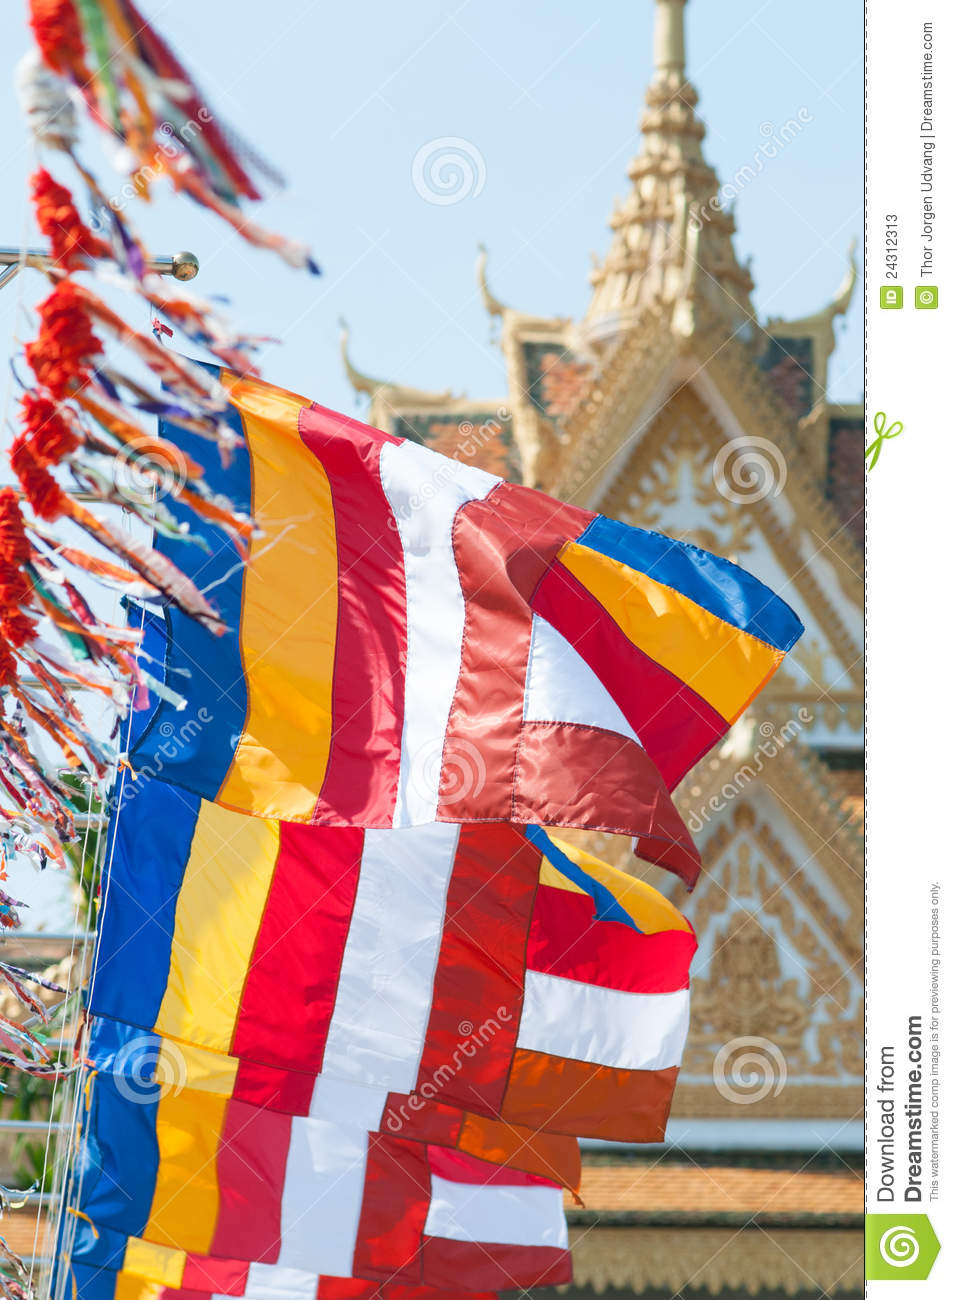 Buddhist Flags In Cambodia Stock Photos - Image: 24312313 Public Policy Symbol